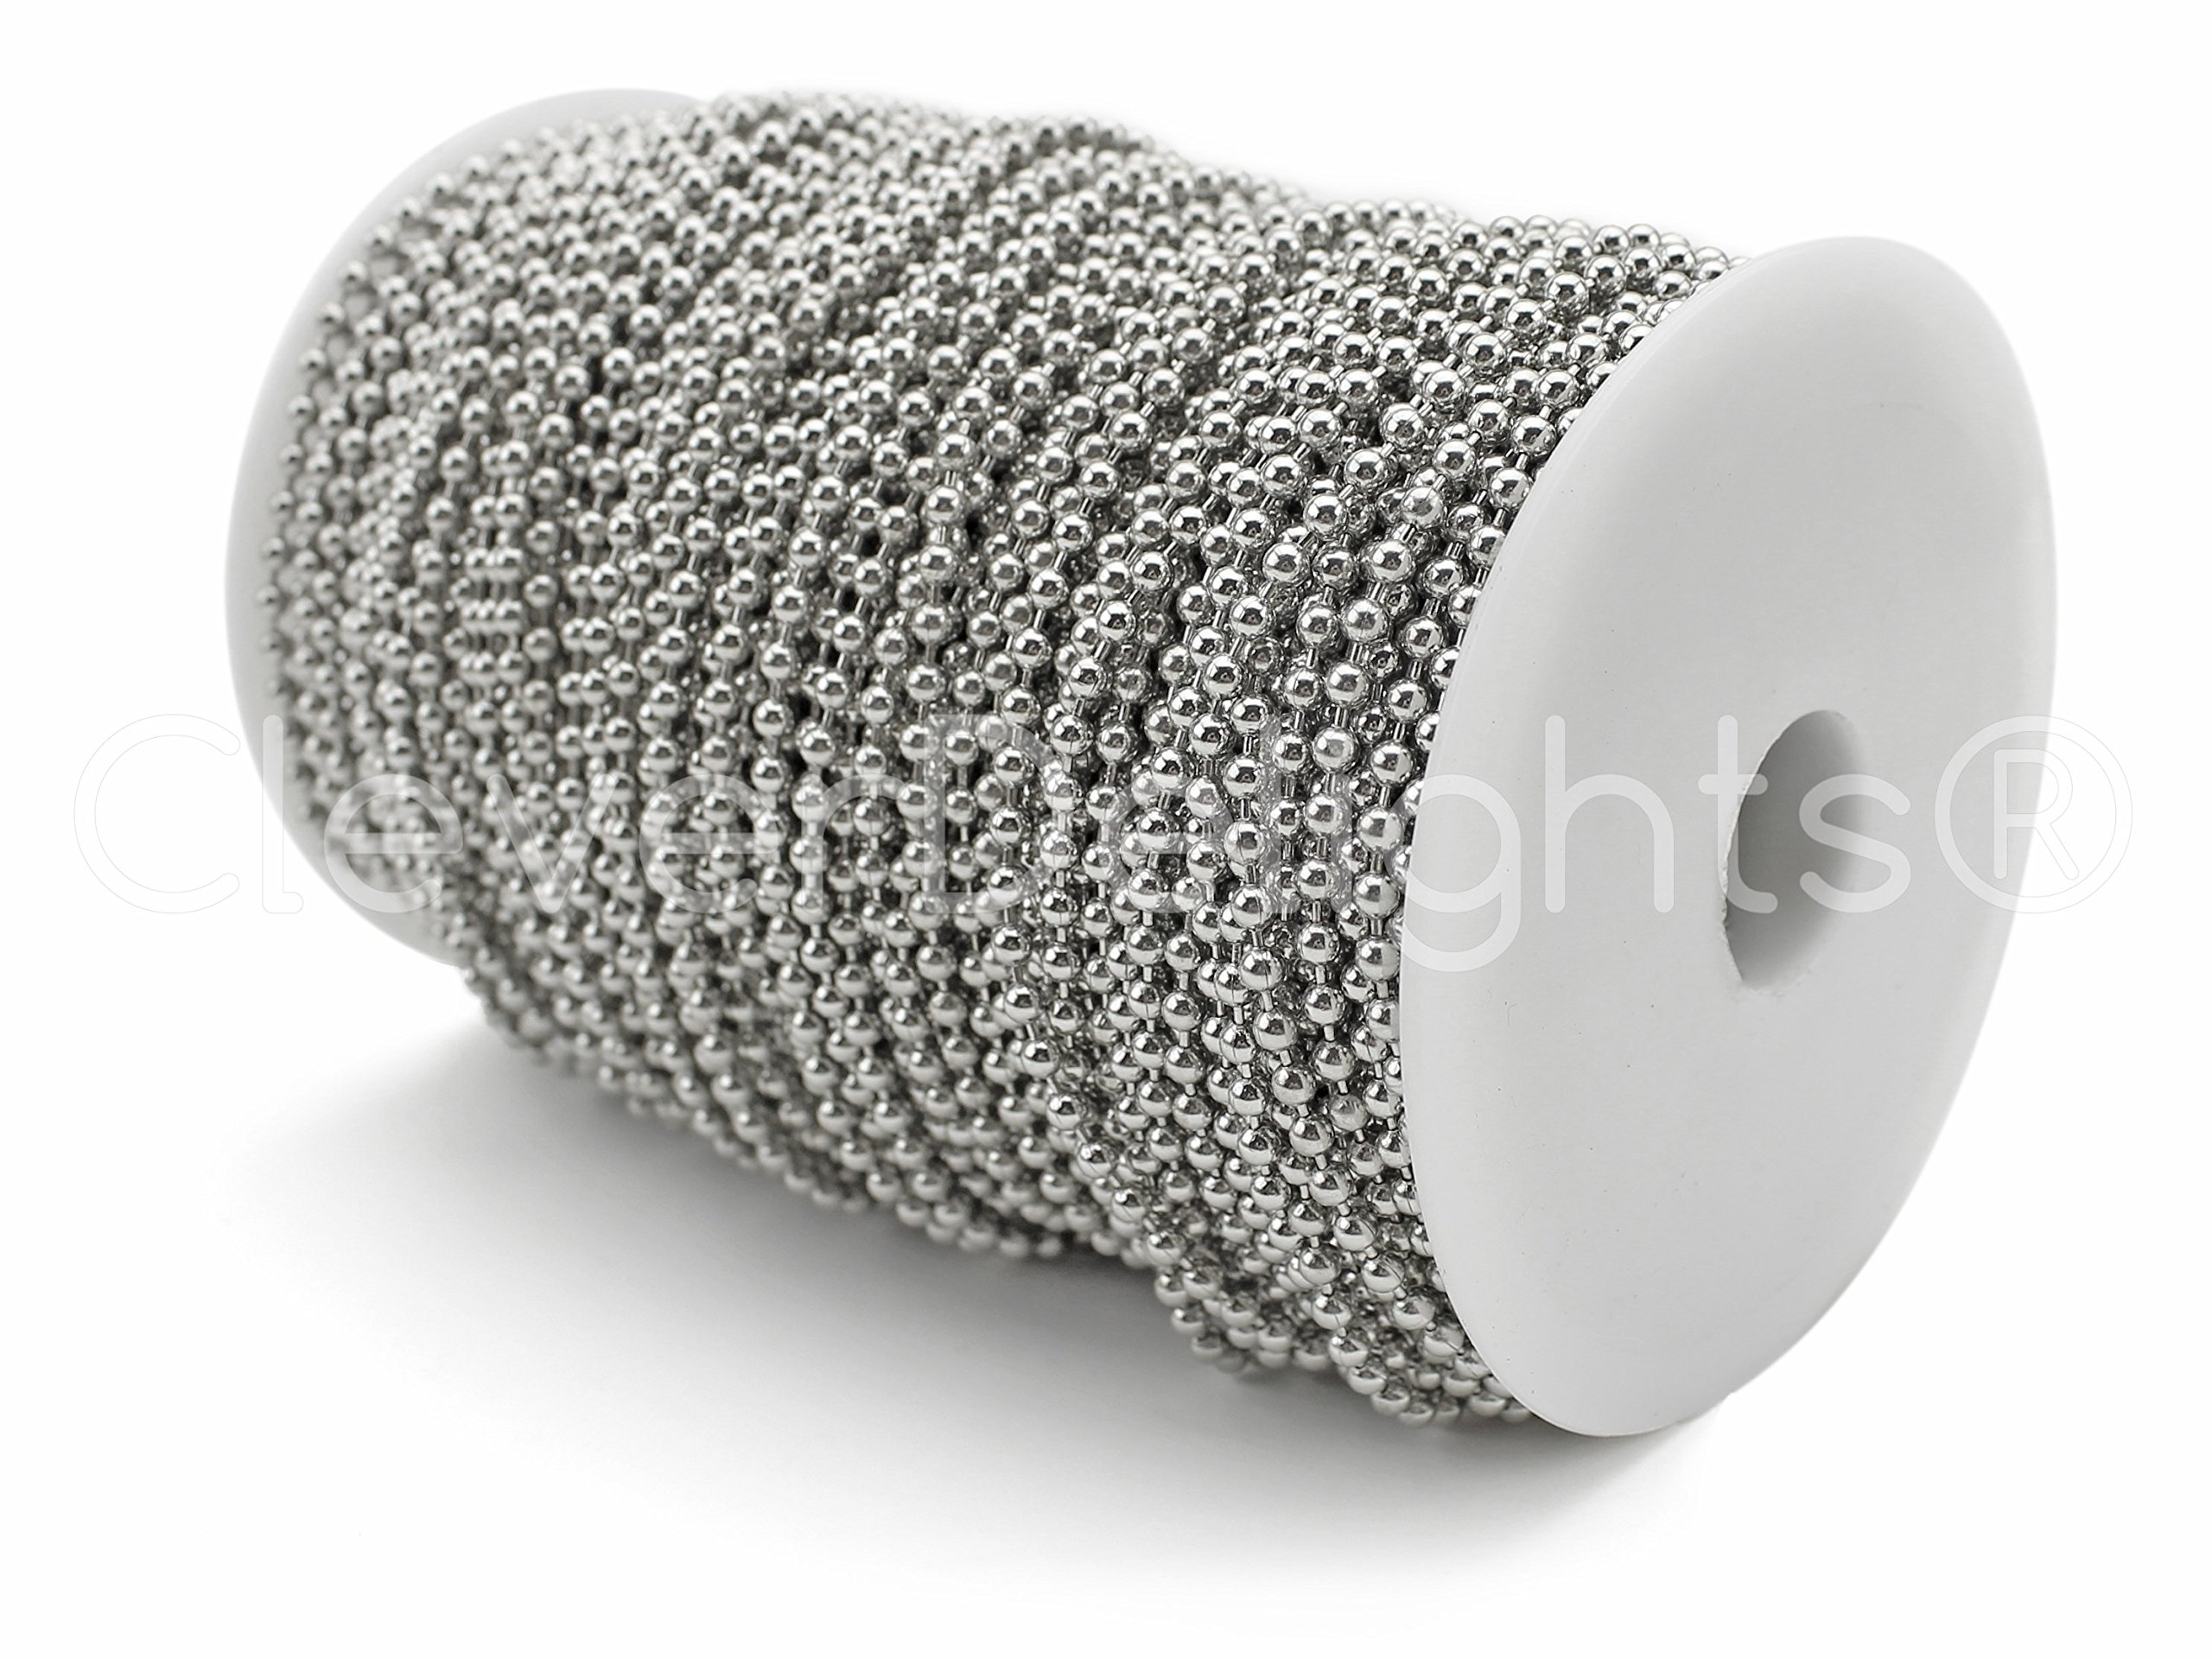 CleverDelights Ball Chain Spool - 330 Feet - 3.2mm Ball (#6 Size) - Antique Silver (Platinum) - 100 Meter by CleverDelights